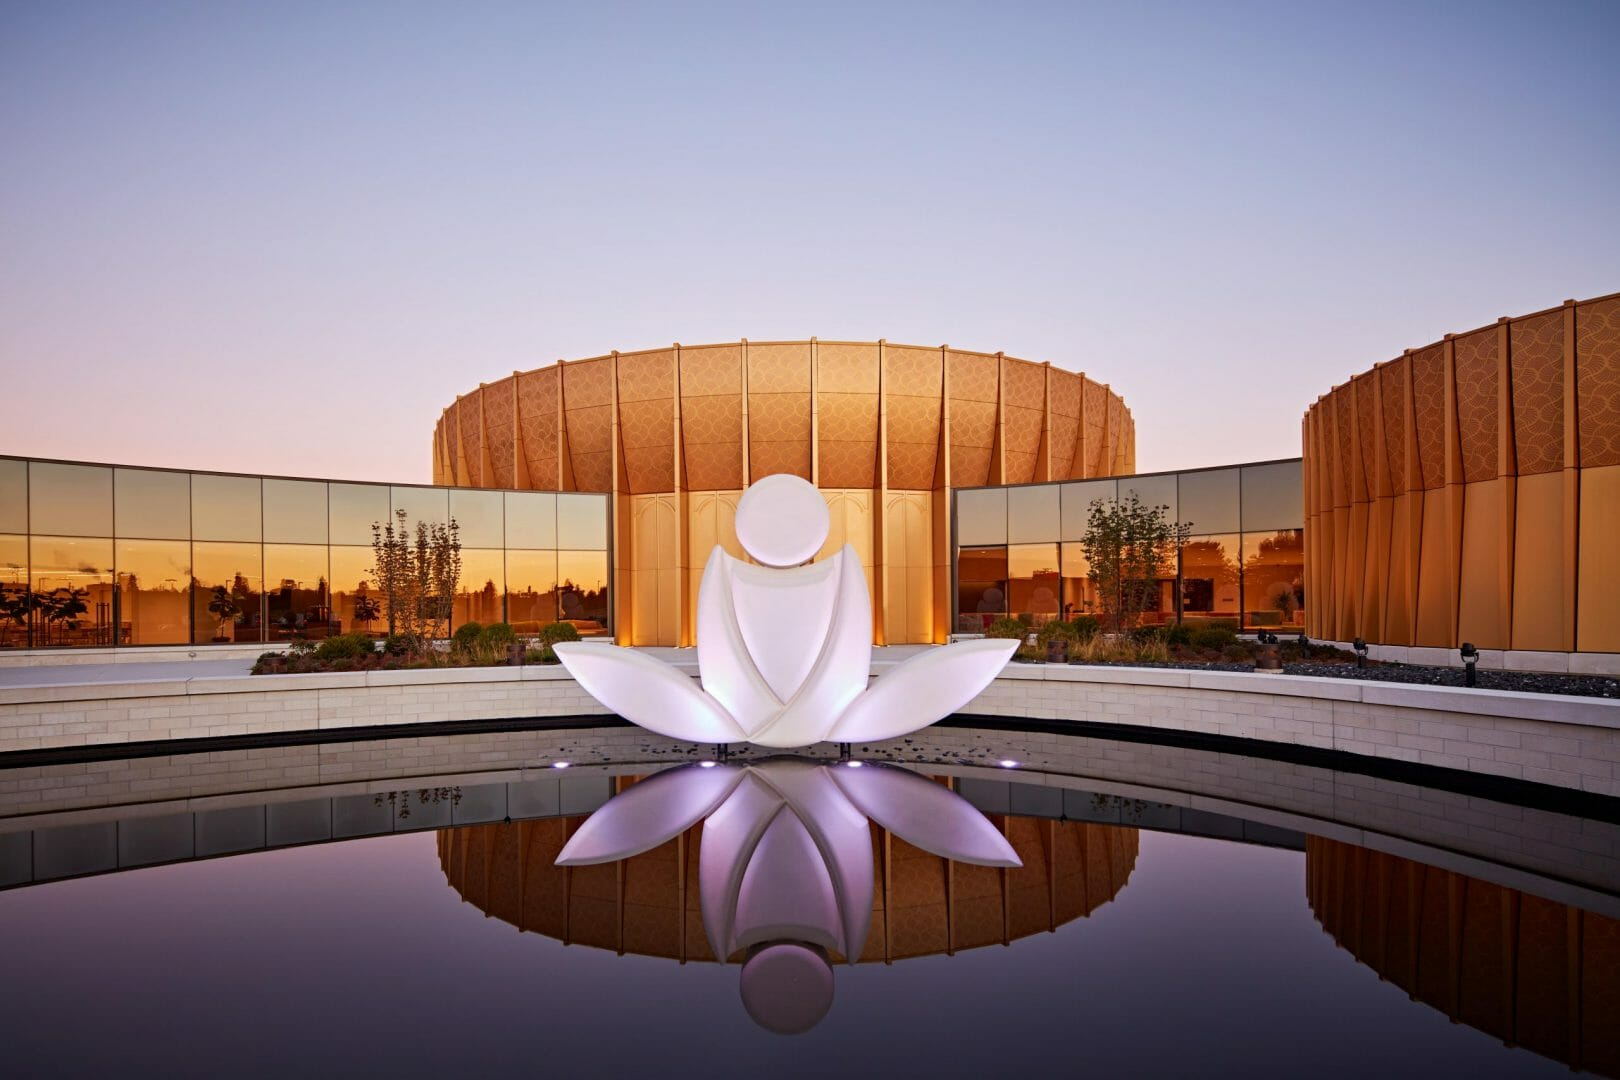 International Meditation Center | Outside view of the meditation center at Lisle